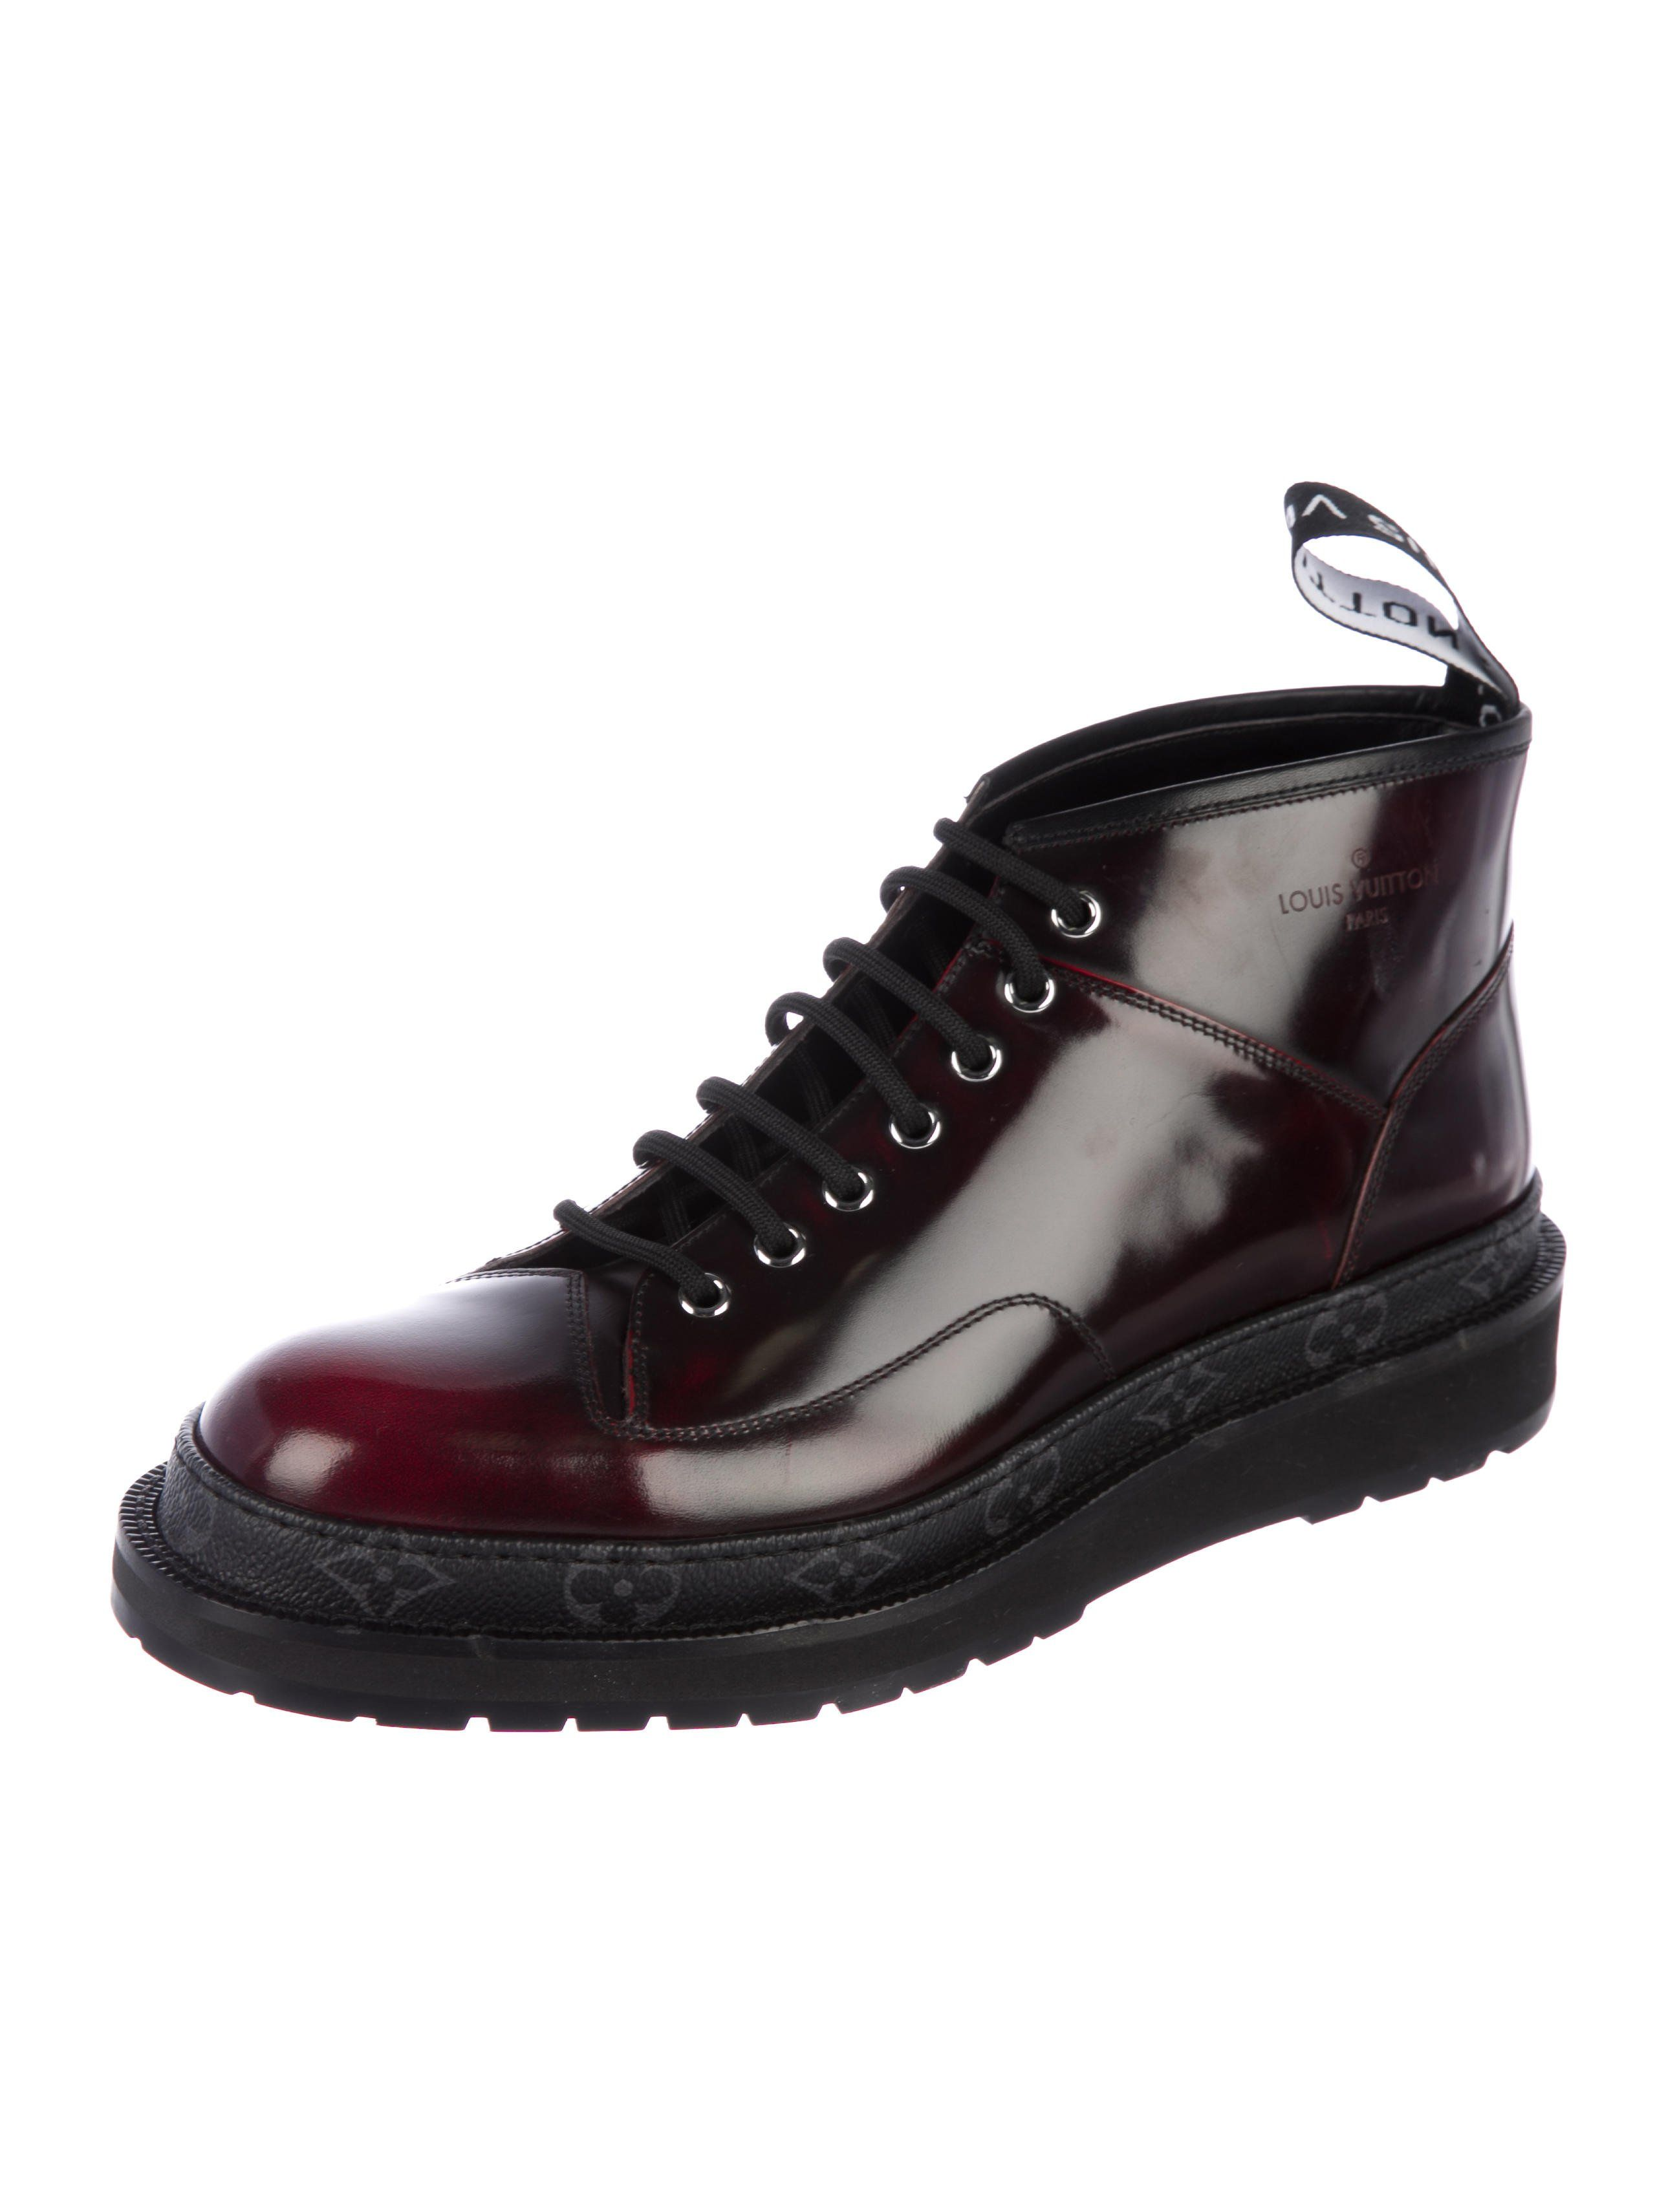 dac56c2247af Men s oxblood leather Louis Vuitton Black Ice ankle boots with extended  pull tabs at counters